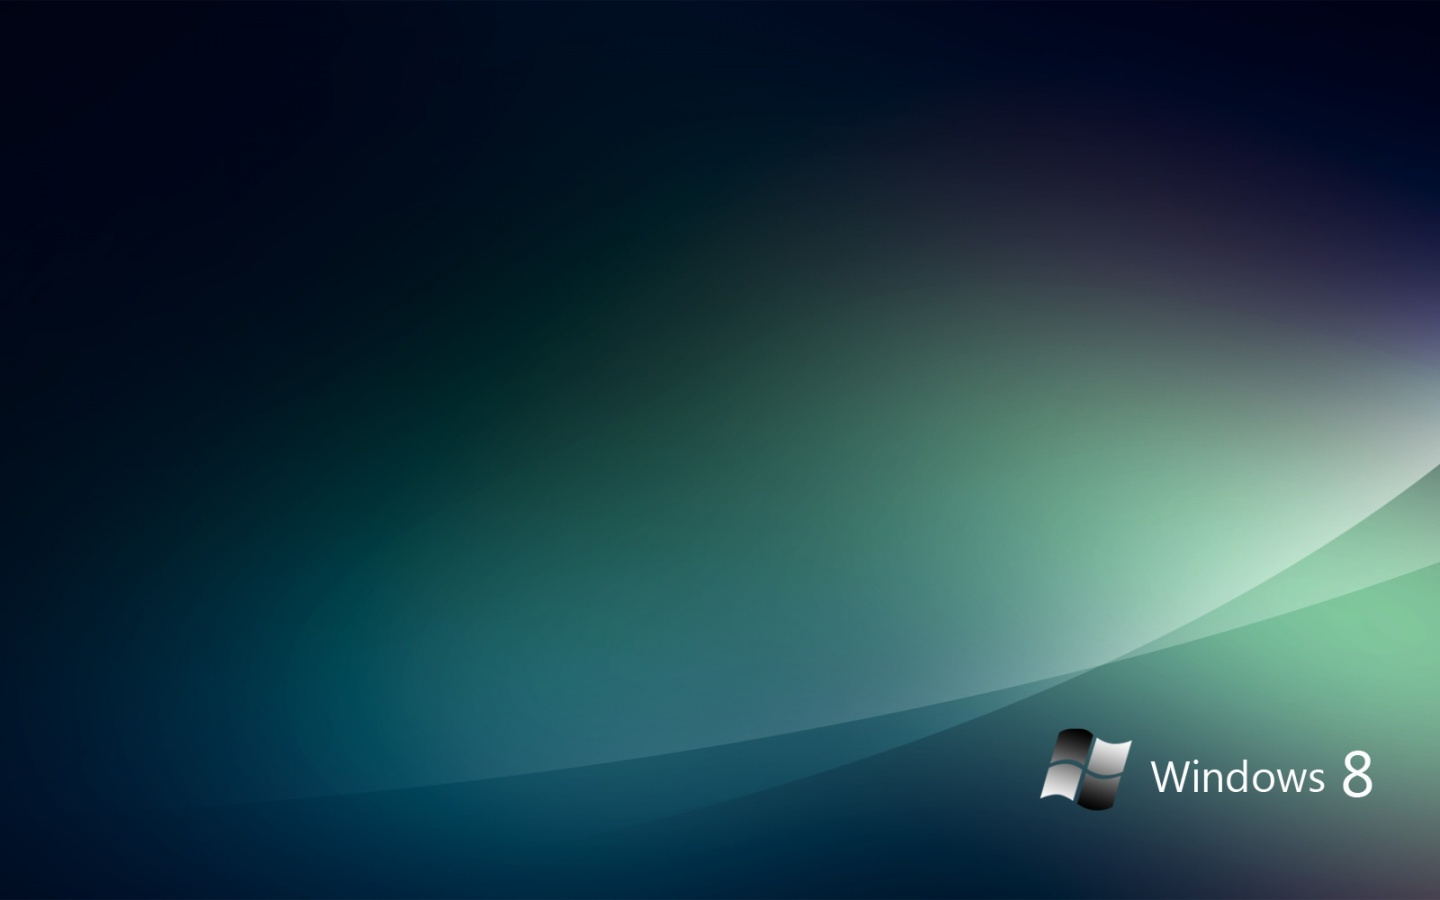 Windows 8 1 Wallpaper 1440x900